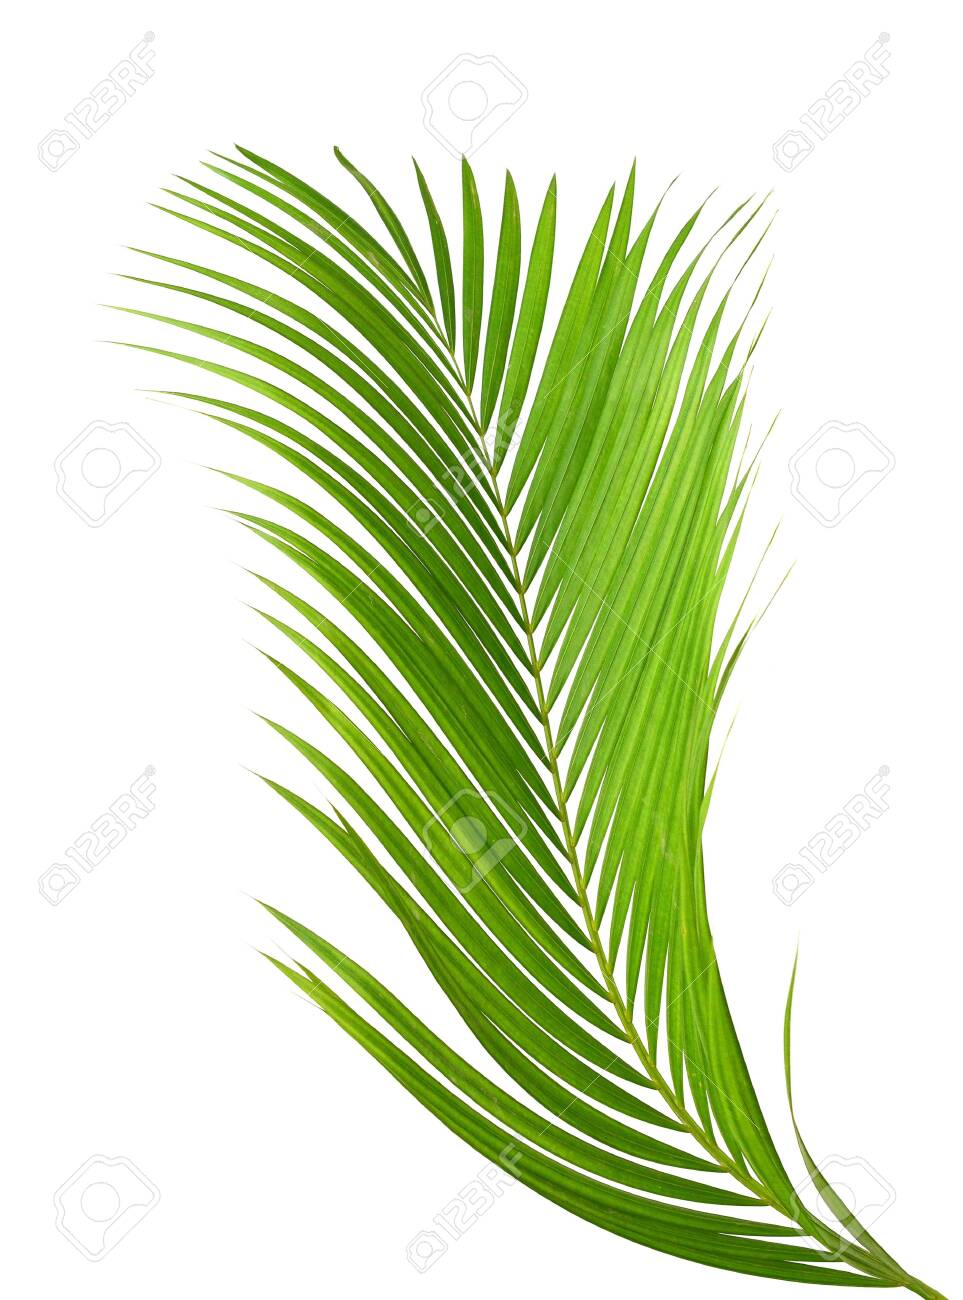 Yellow Palm Leaves Dypsis Lutescens Or Golden Cane Palm Areca Stock Photo Picture And Royalty Free Image Image 118986684